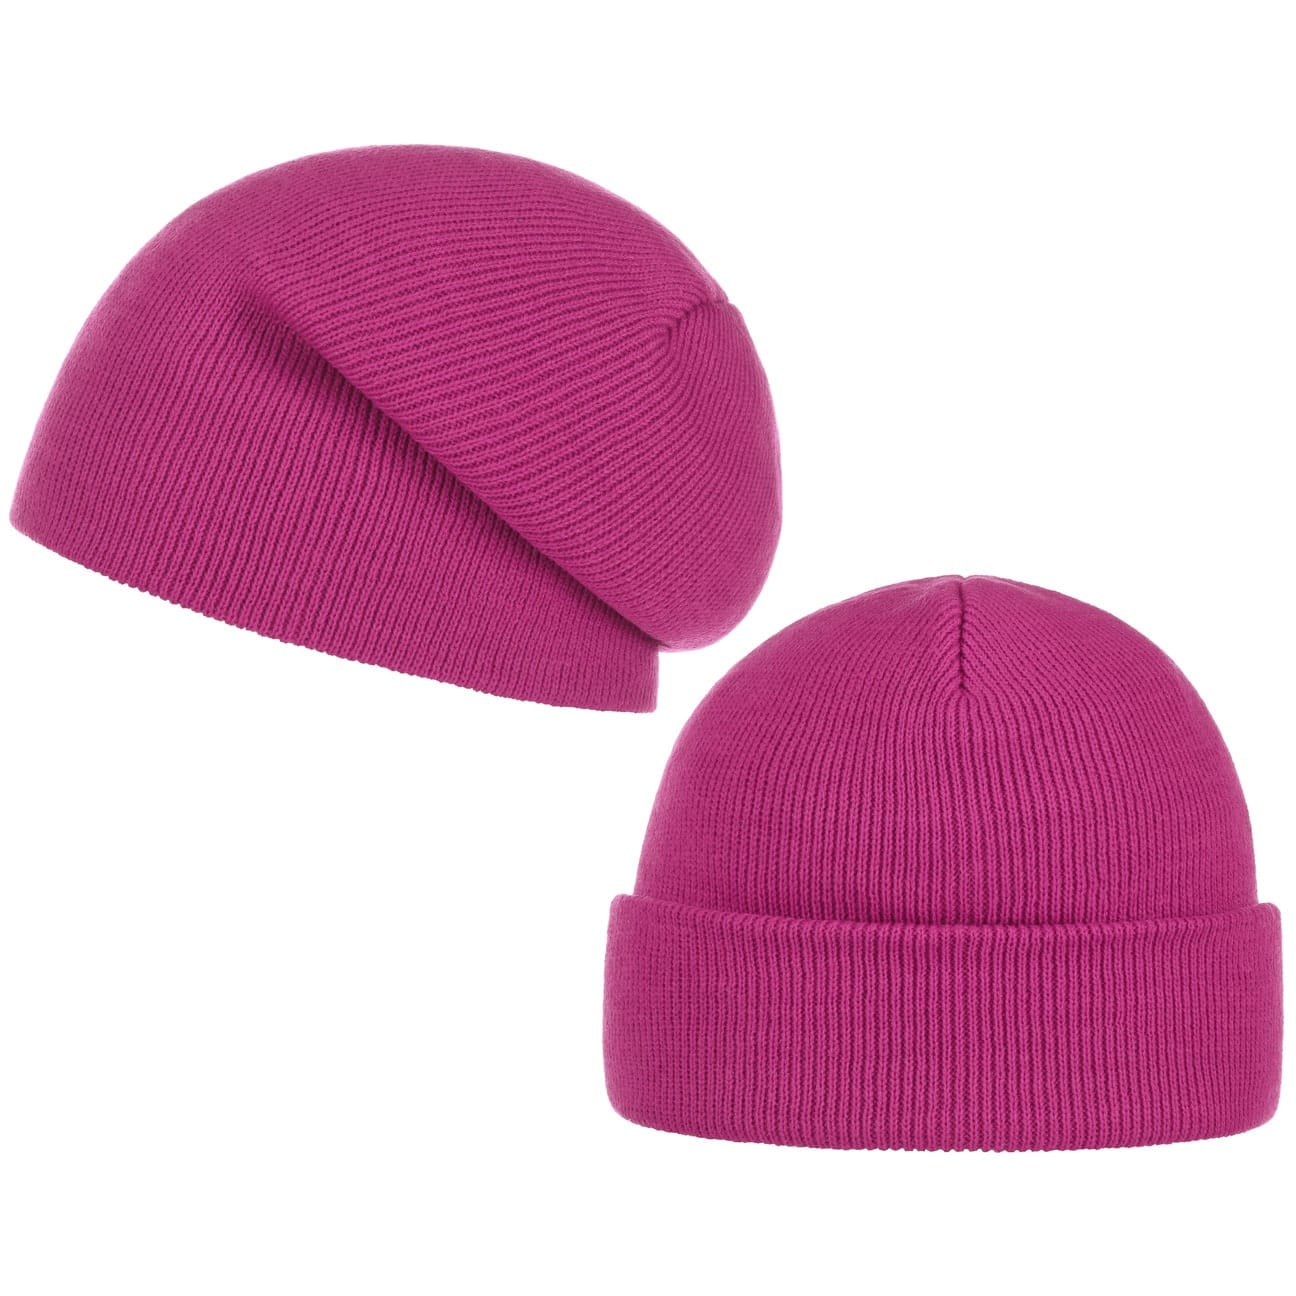 Beanie Oversize Basic  gorro pull on